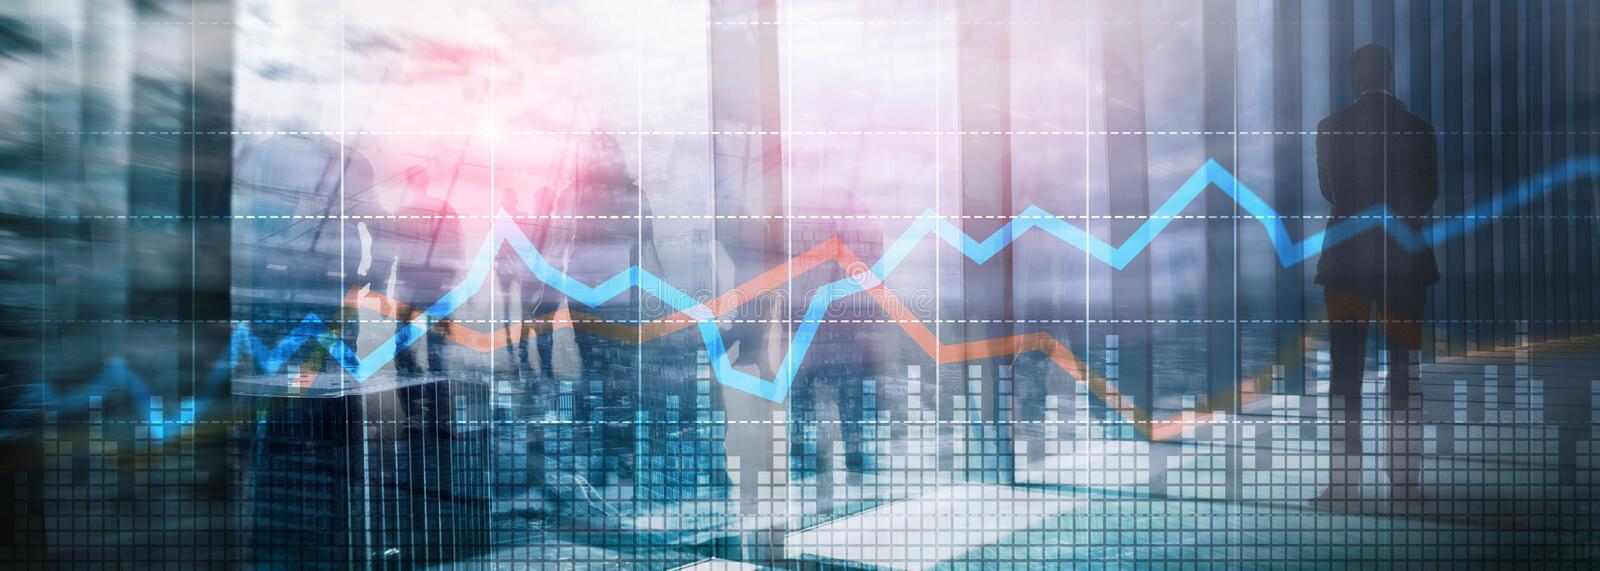 Business Financial Trading Investment concept graph virtual screen double exposure. royalty free stock images